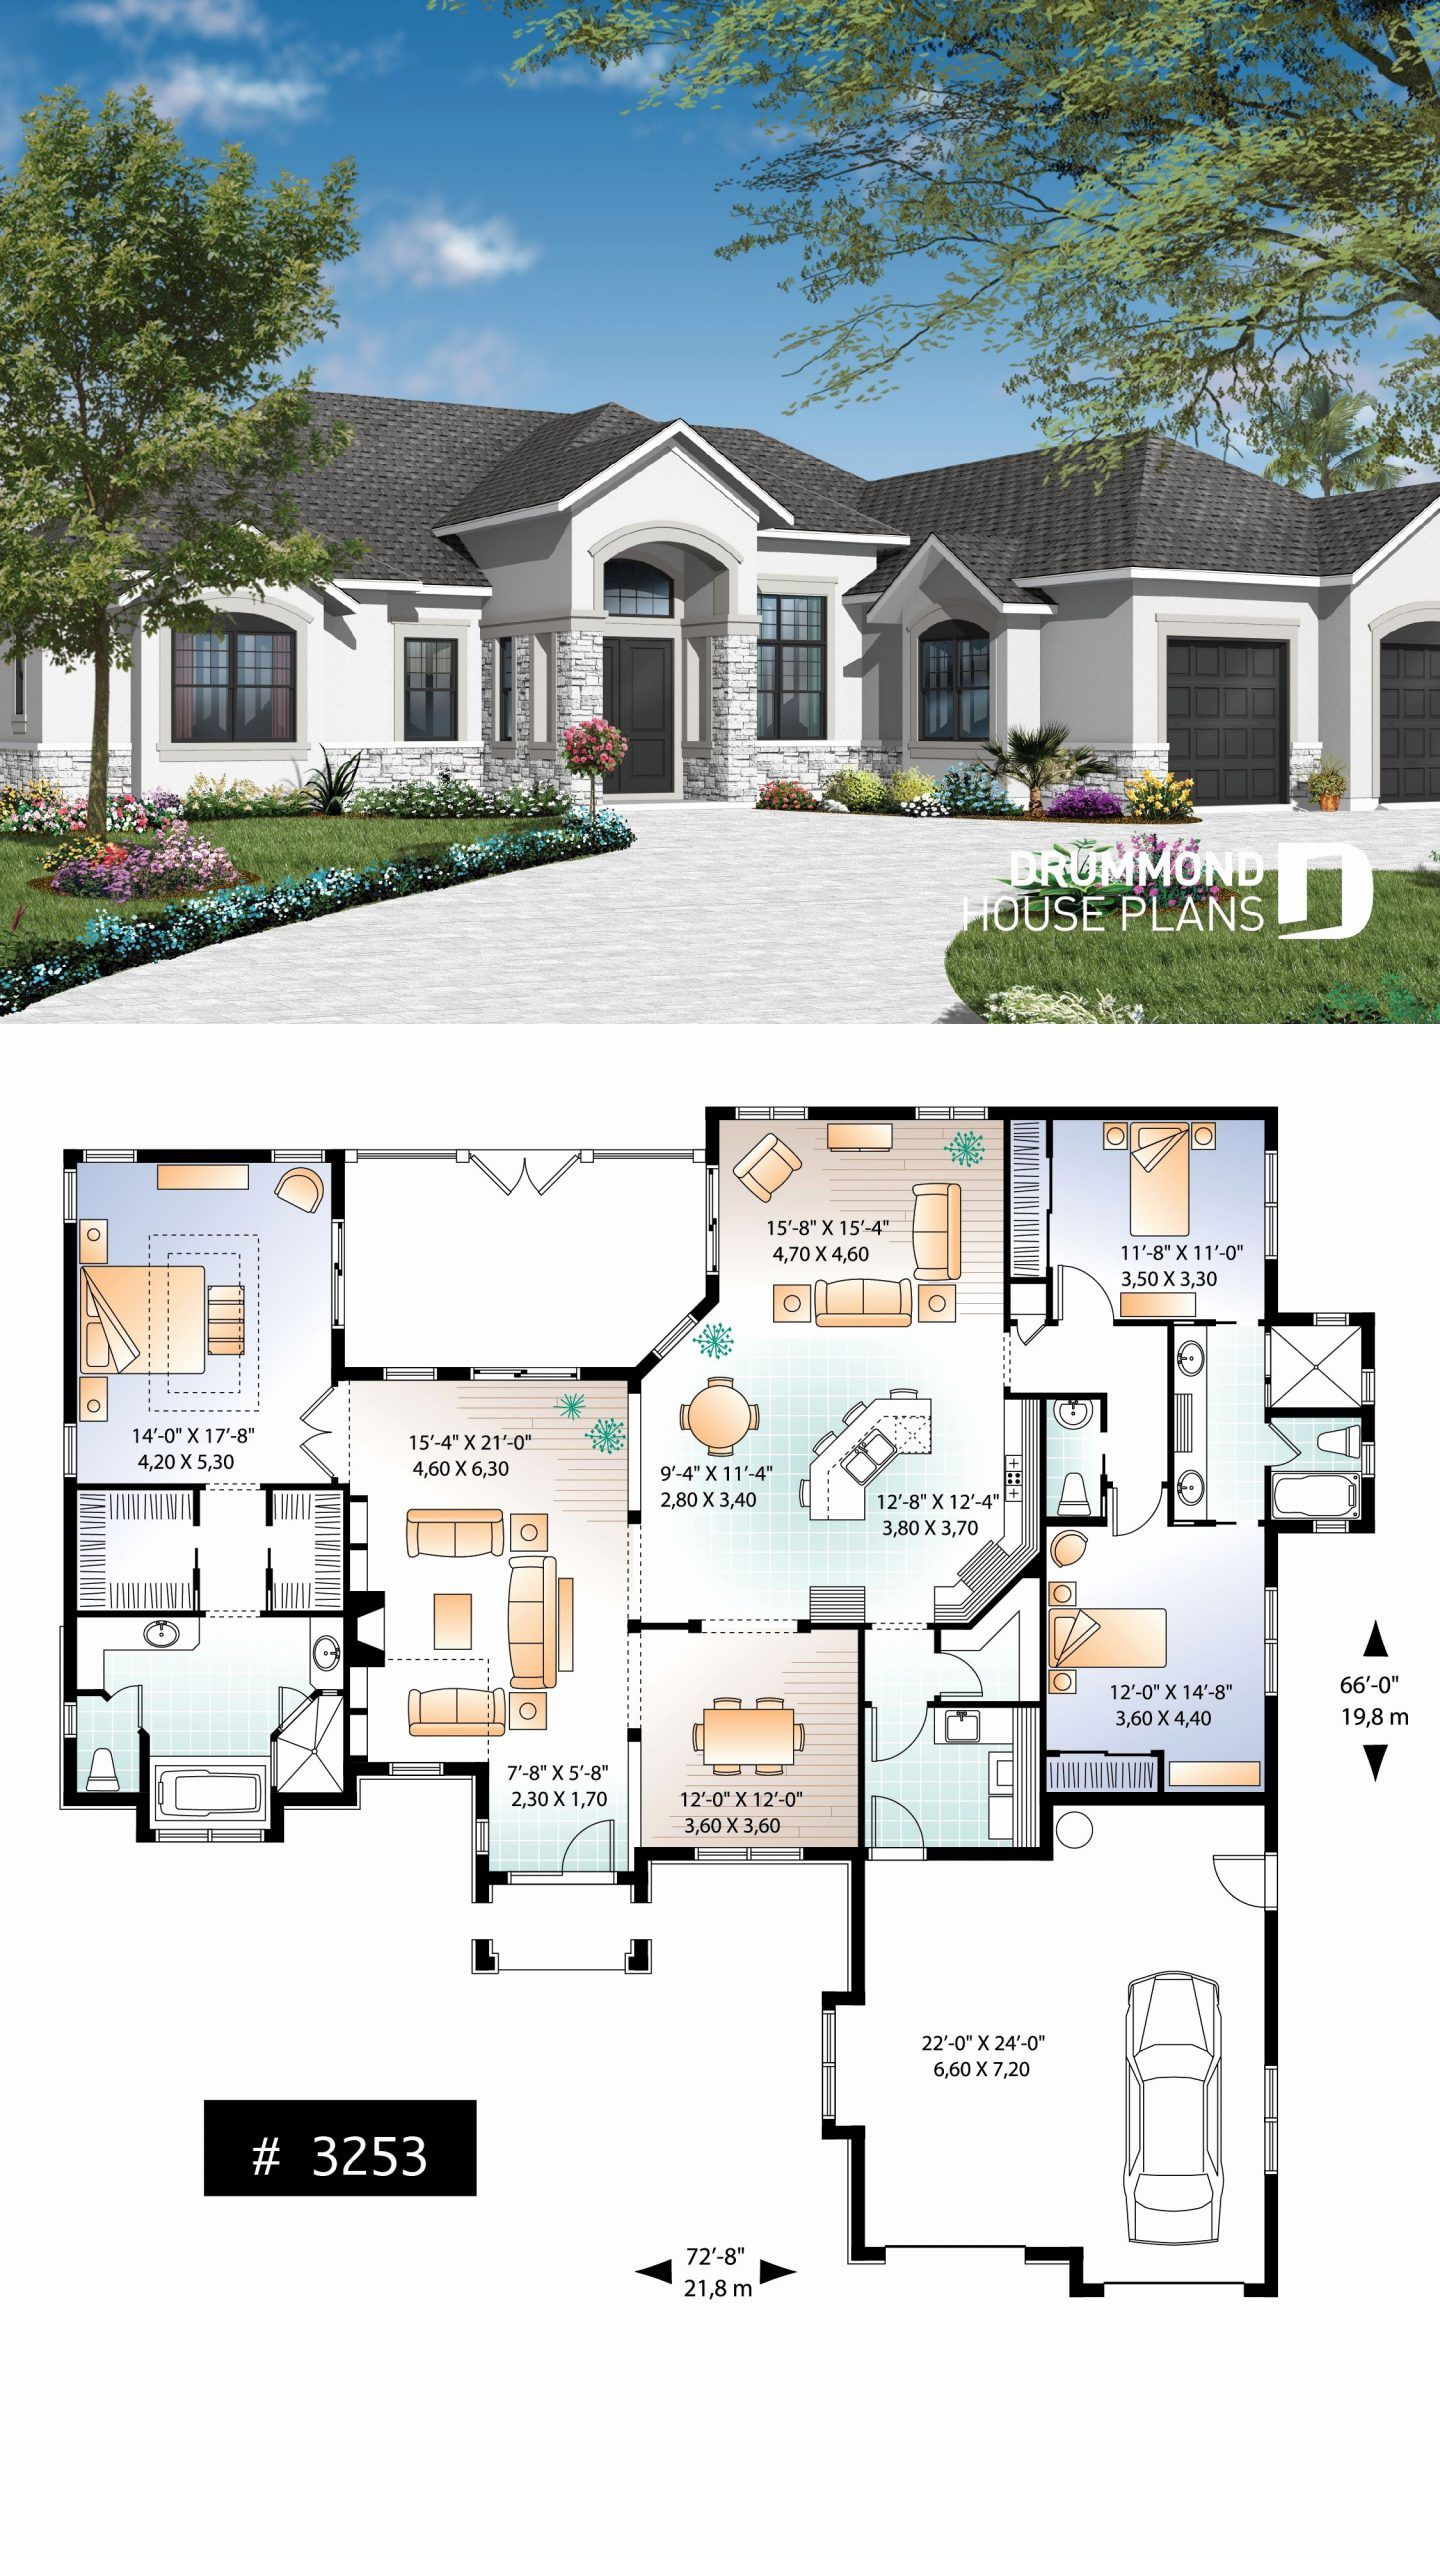 13 Bedroom House Plans Fresh Mediterranean 3 Bedroom House Plan With 13 Ceilings Double In 2020 Florida House Plans Family House Plans New House Plans